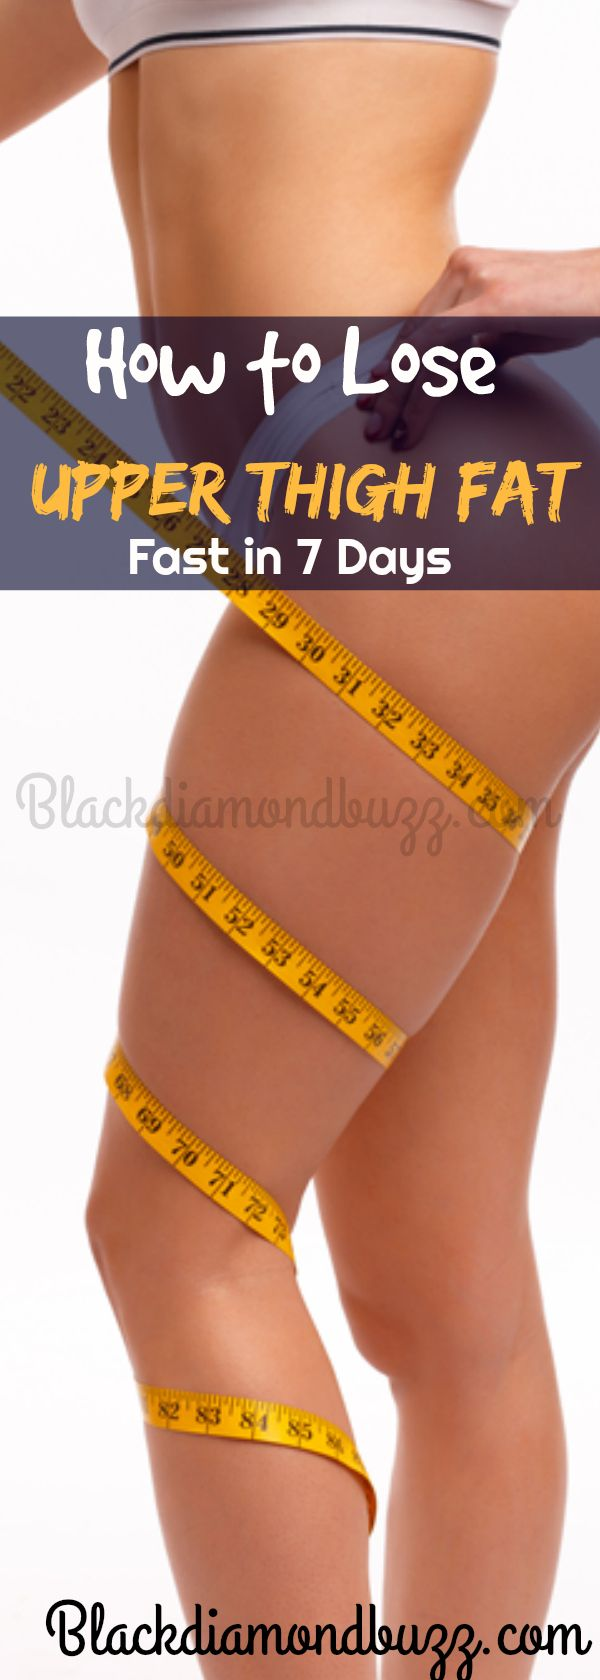 Free hypnosis to lose weight fast